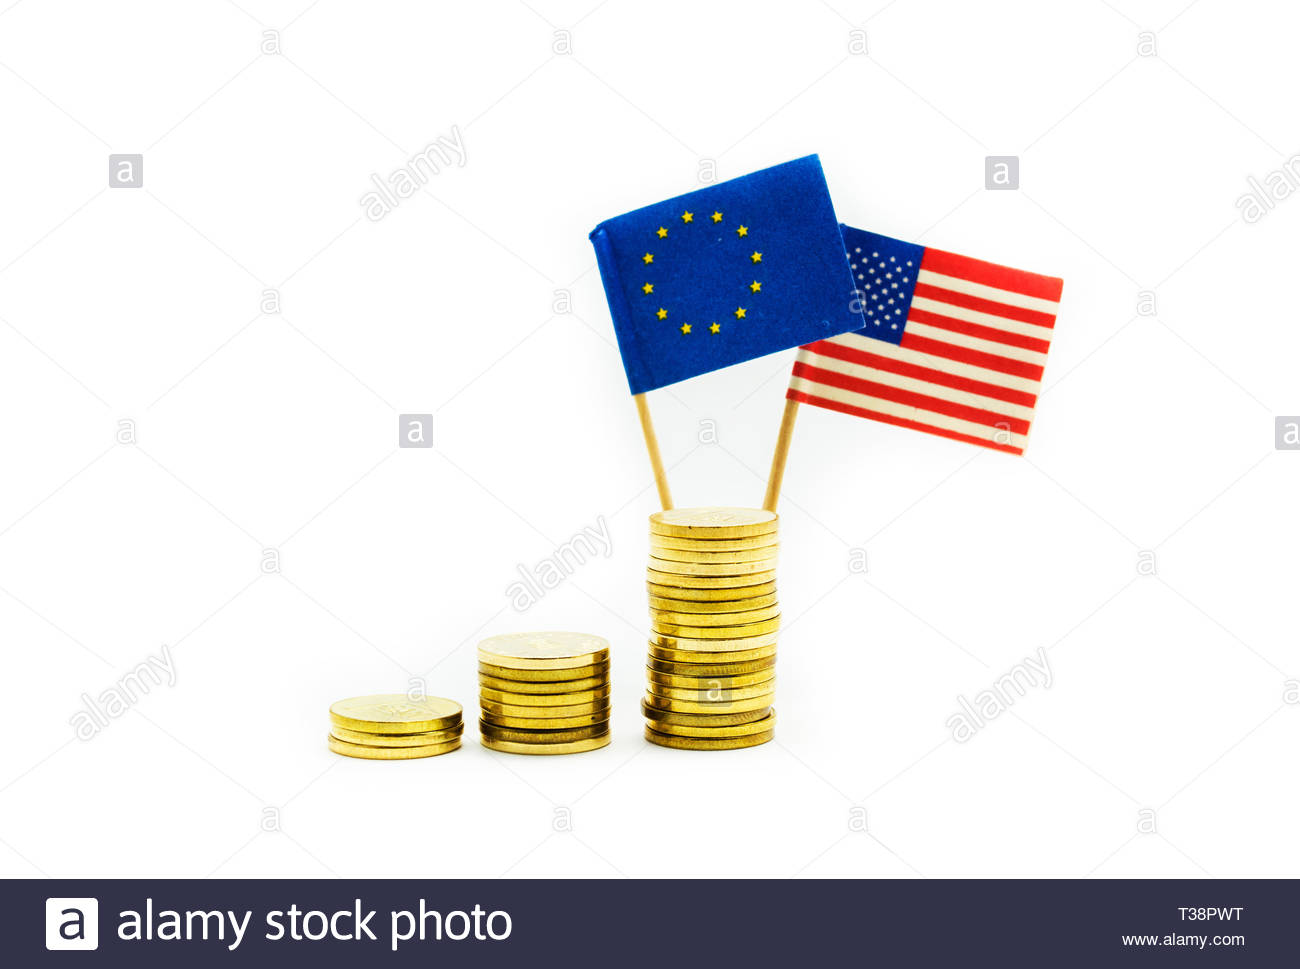 Flags of United States and European Union on a stack of ascending golden coins. Concept of wealth, partnership and economical relationships. - Stock Image